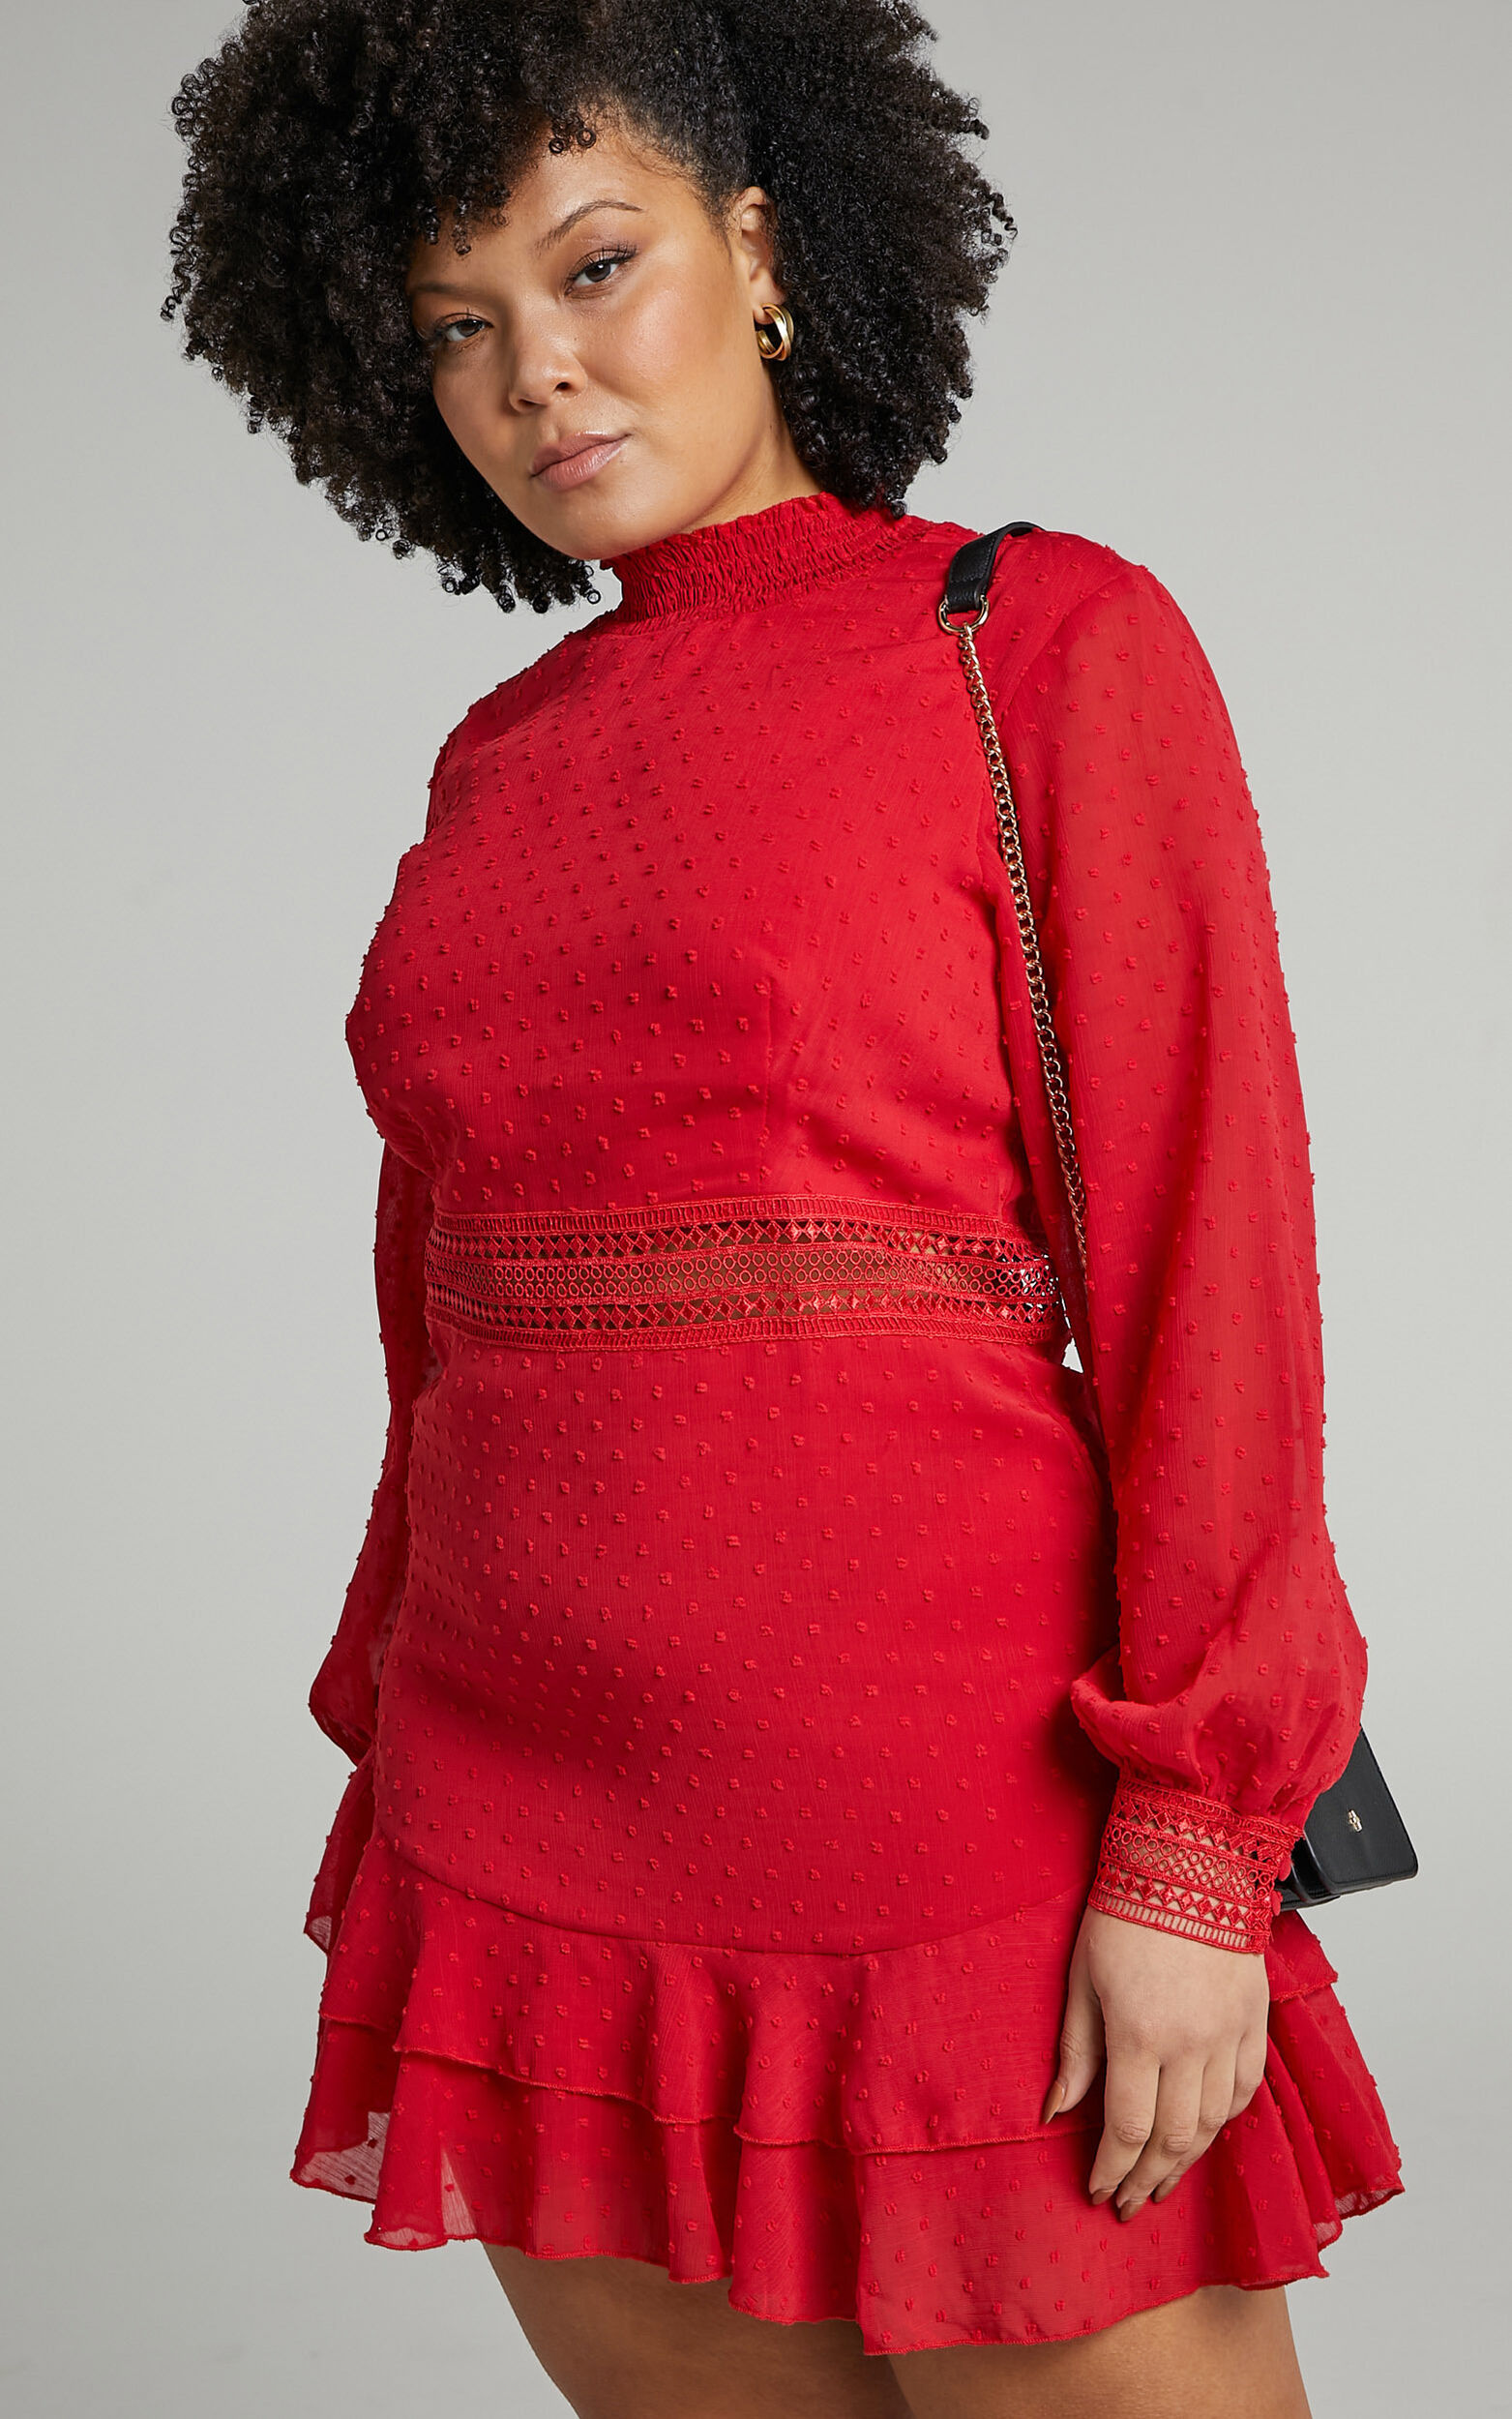 Are You Gonna Kiss Me Long Sleeve Mini Dress in Red - 04, RED2, super-hi-res image number null